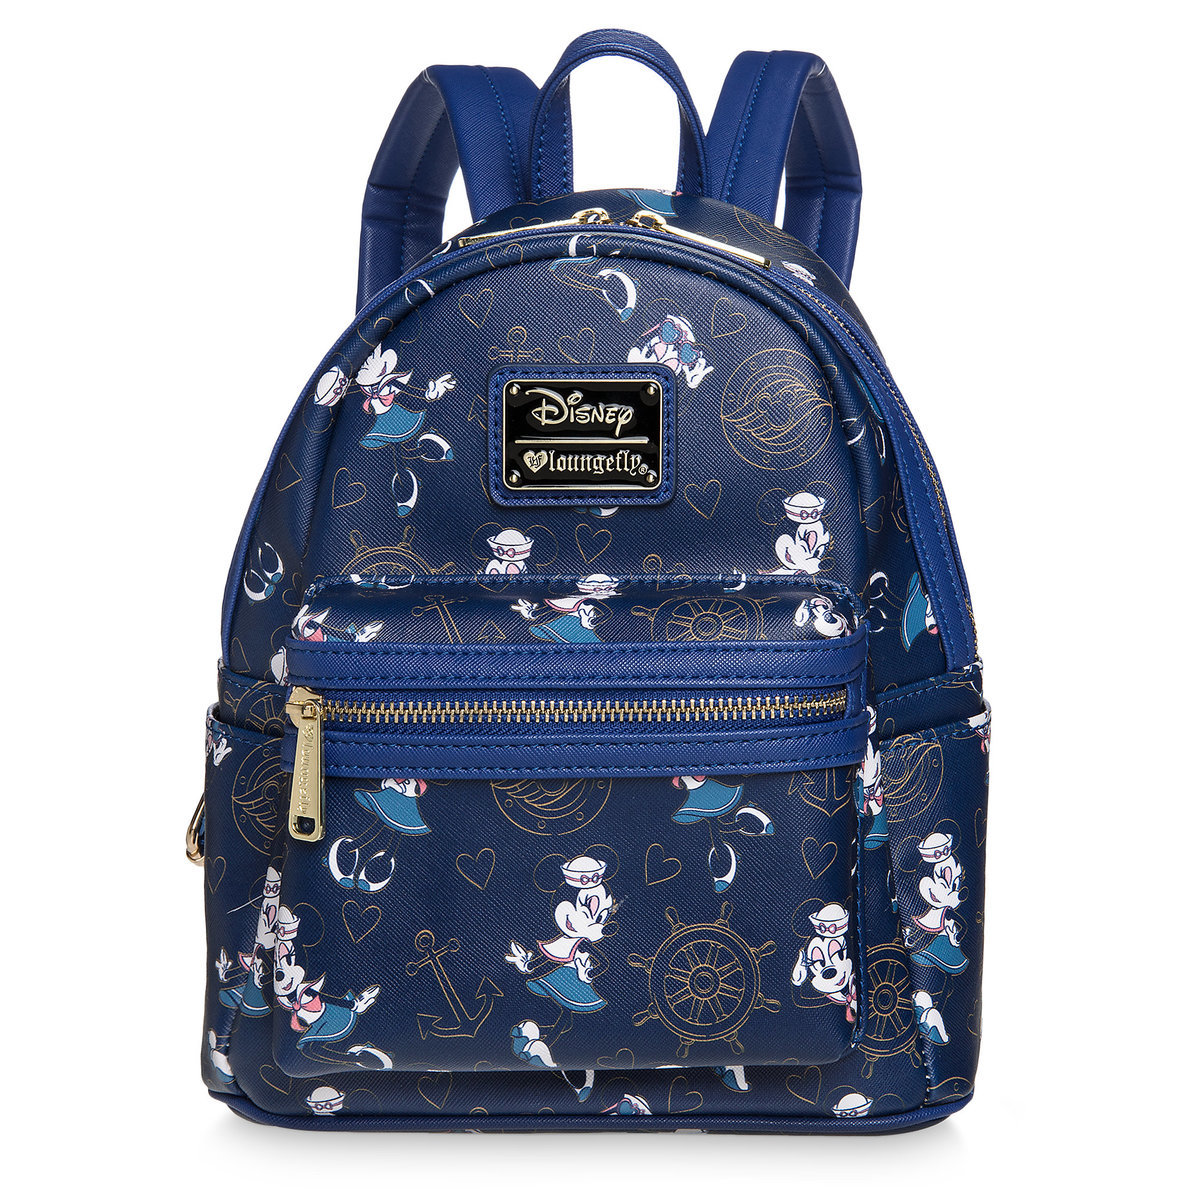 758f745553b Product Image of Disney Cruise Line Mini Backpack by Loungefly   1